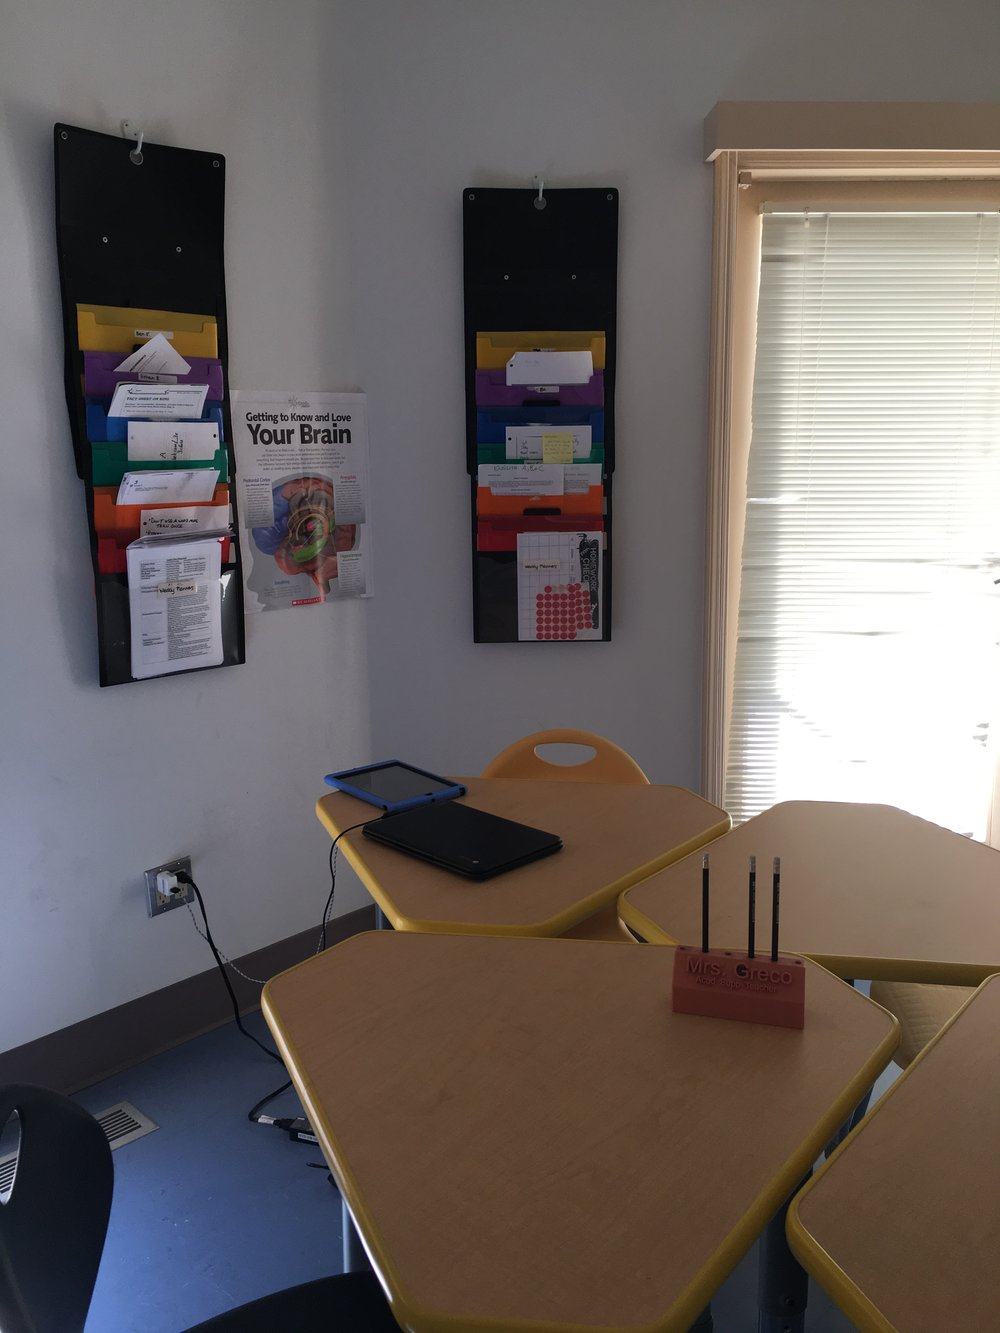 A colorful classroom. Photo by Ilene B. Miller